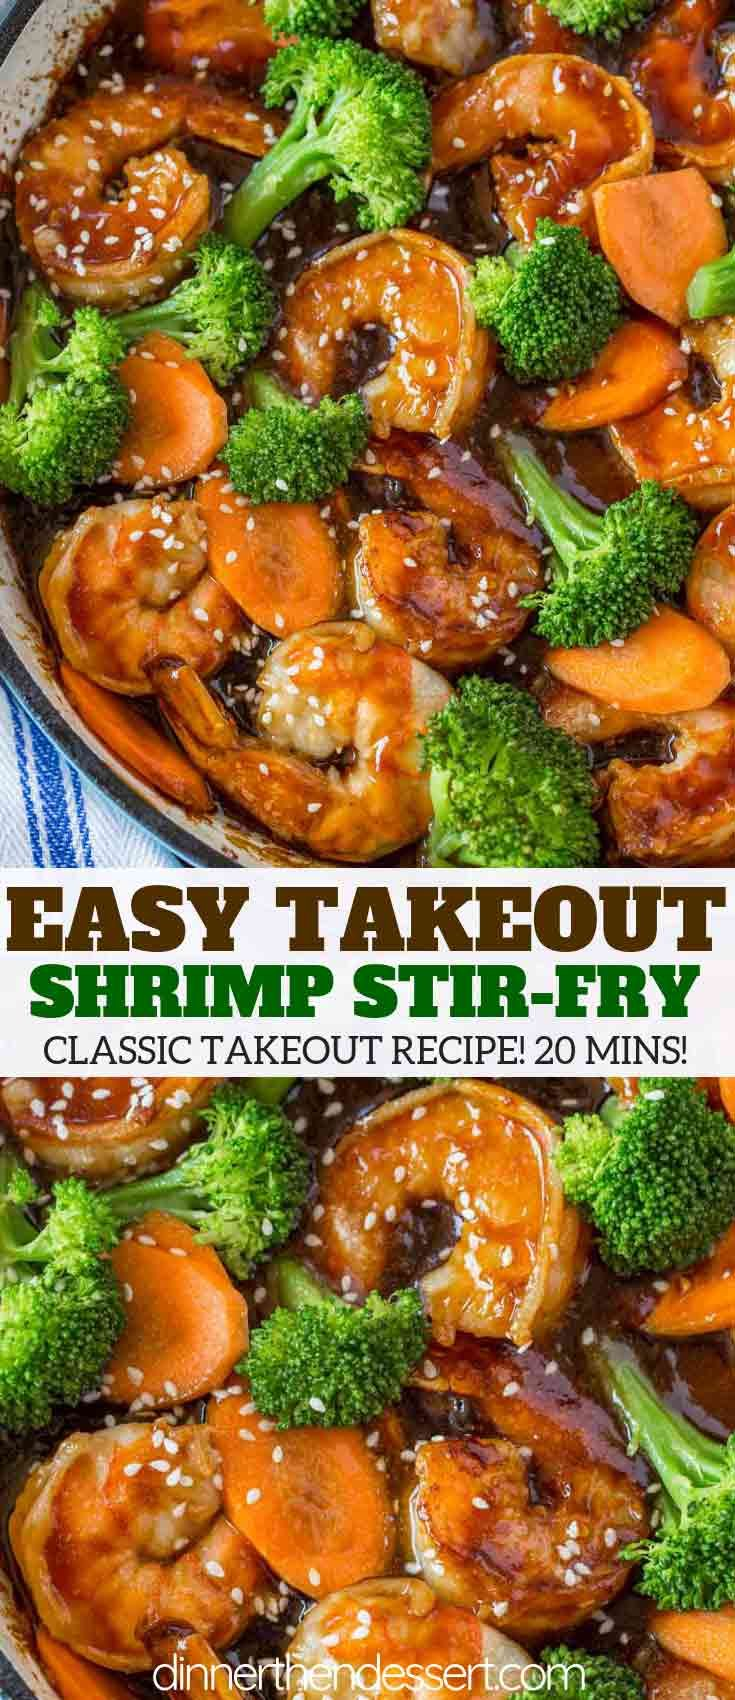 Easy Shrimp Stir-Fry - Dinner, then Dessert